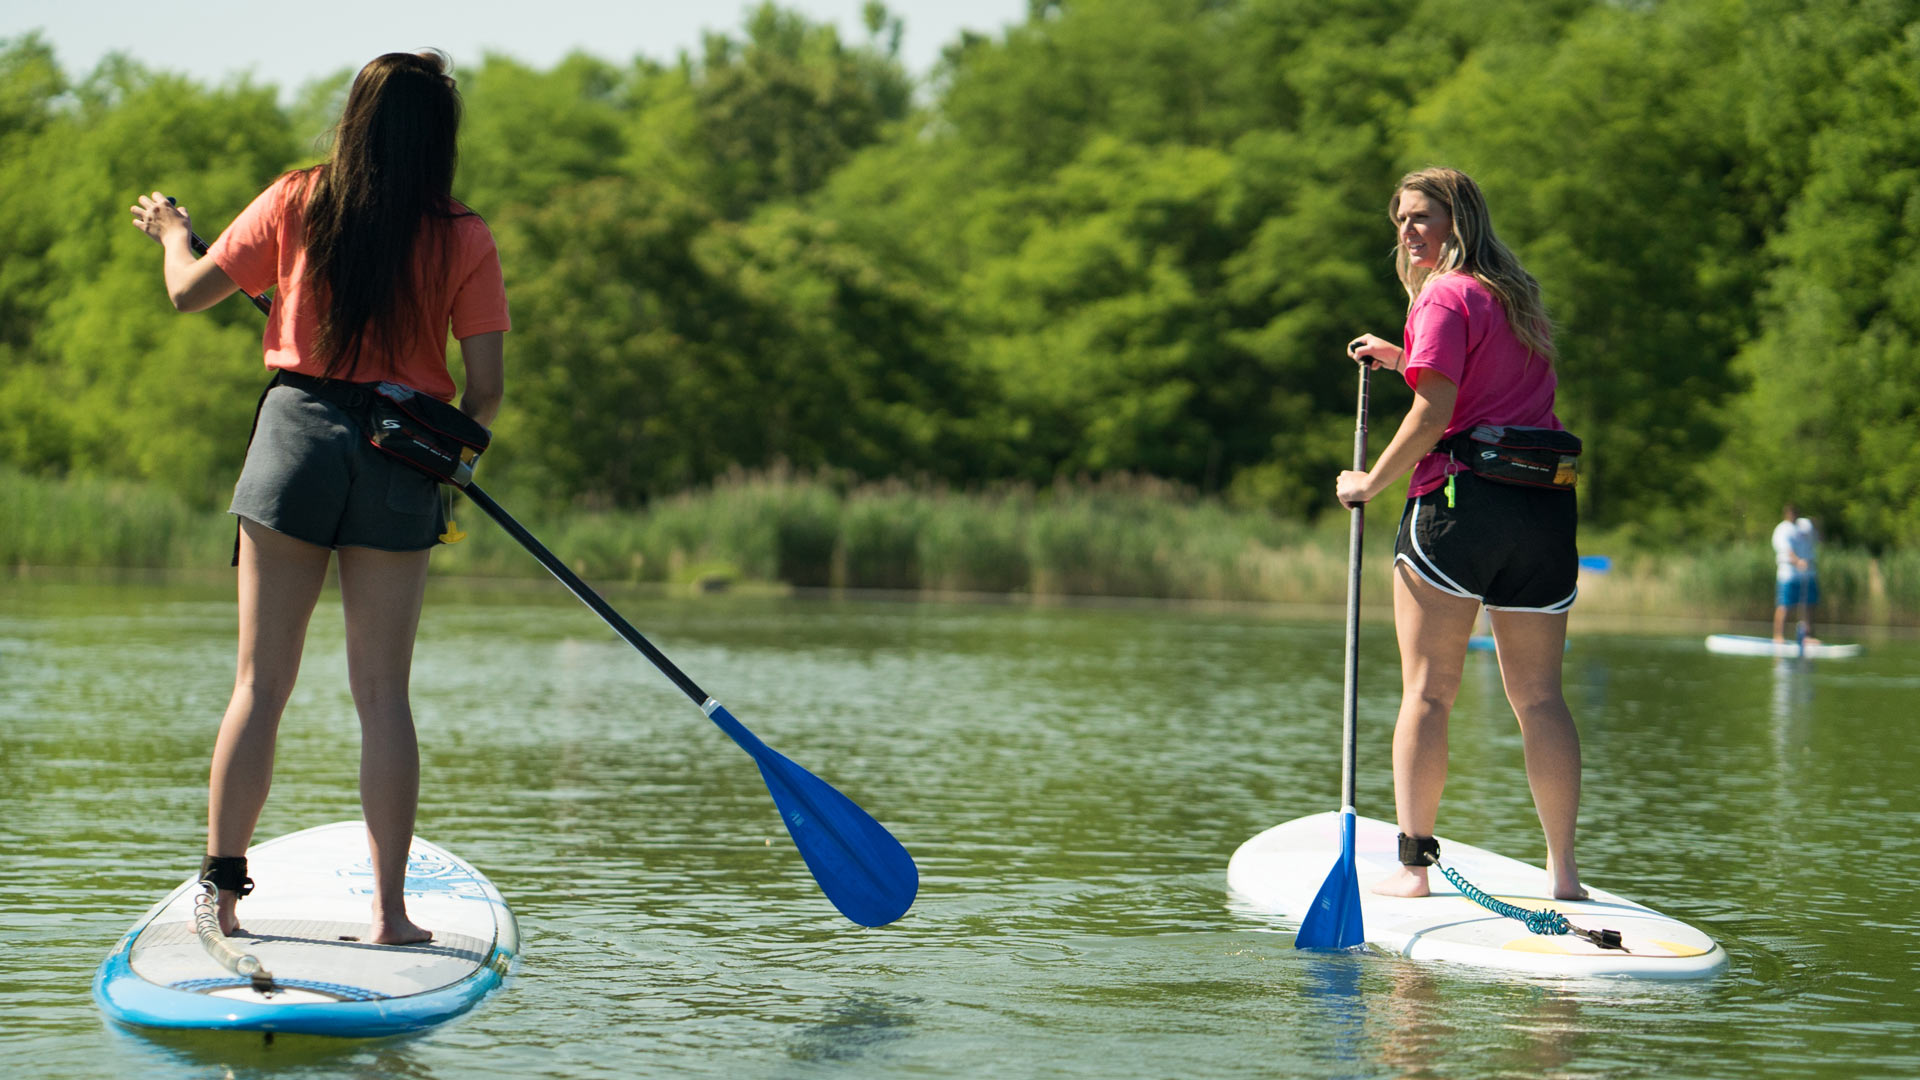 Paddle boarders on the quarry lake at Quarry Trails Metro Park.